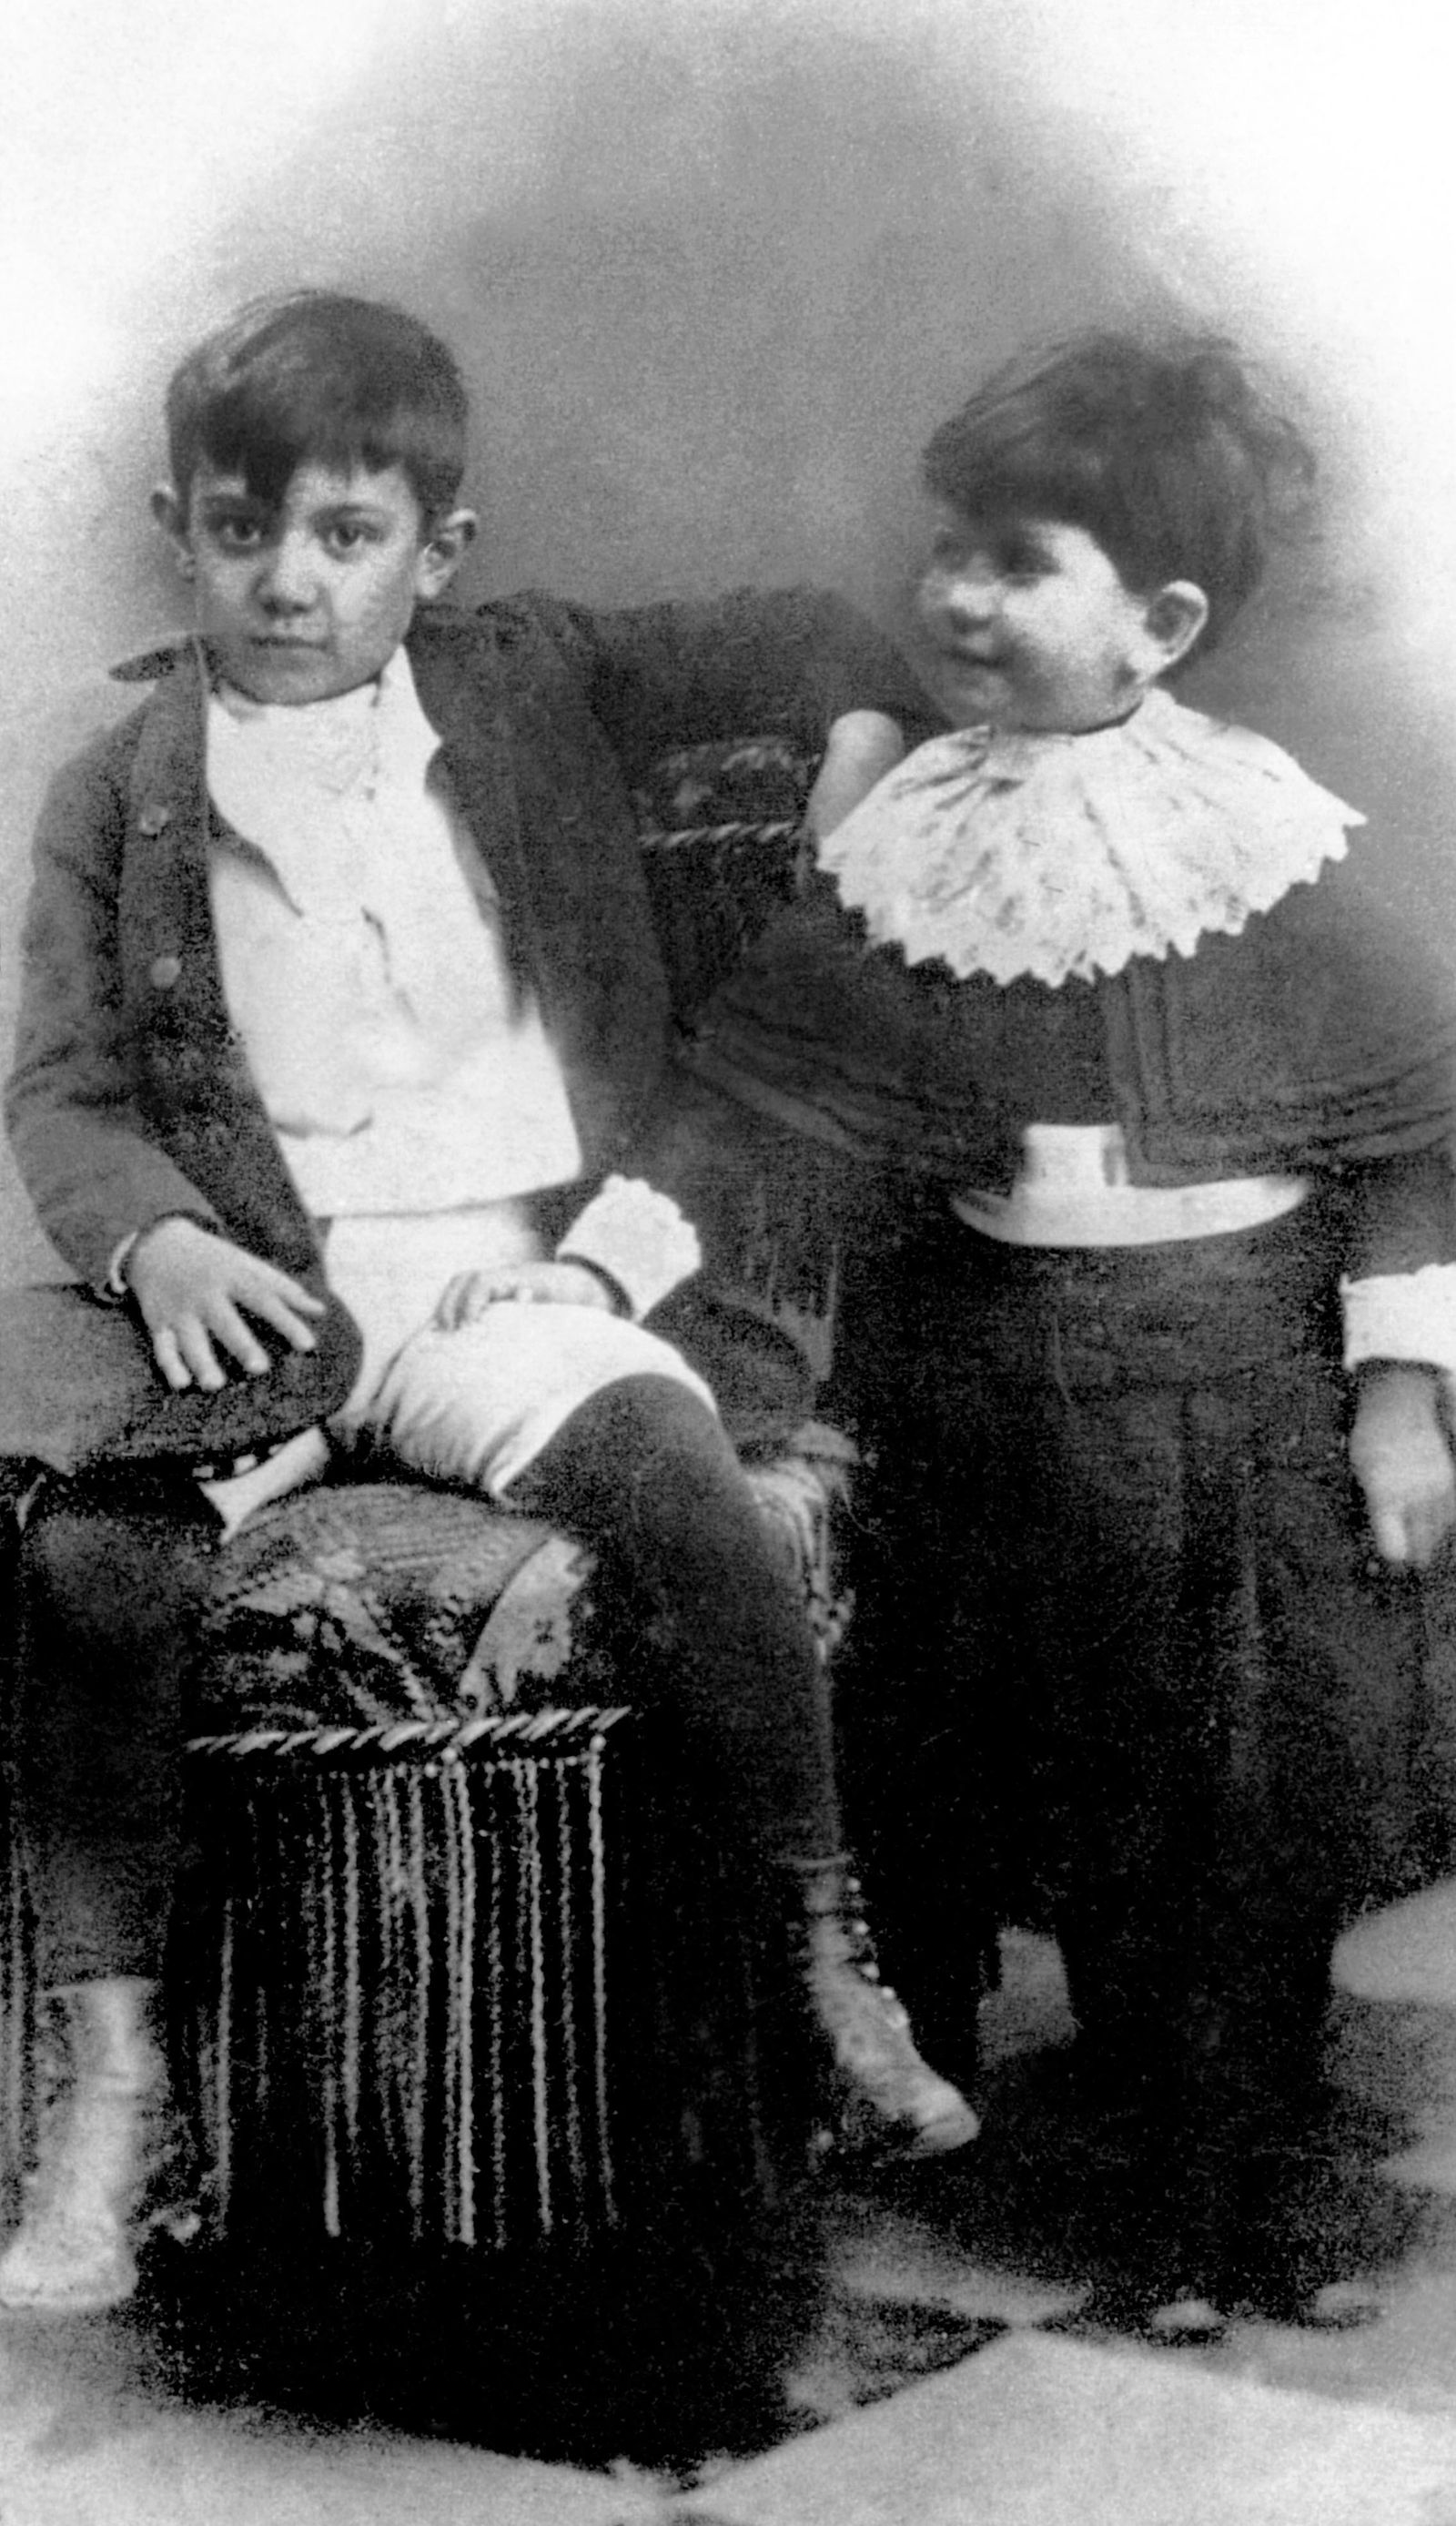 Pablo Picasso (1881-1973) here at the age of 7 years old and his sister Lola in Malaga in 1888